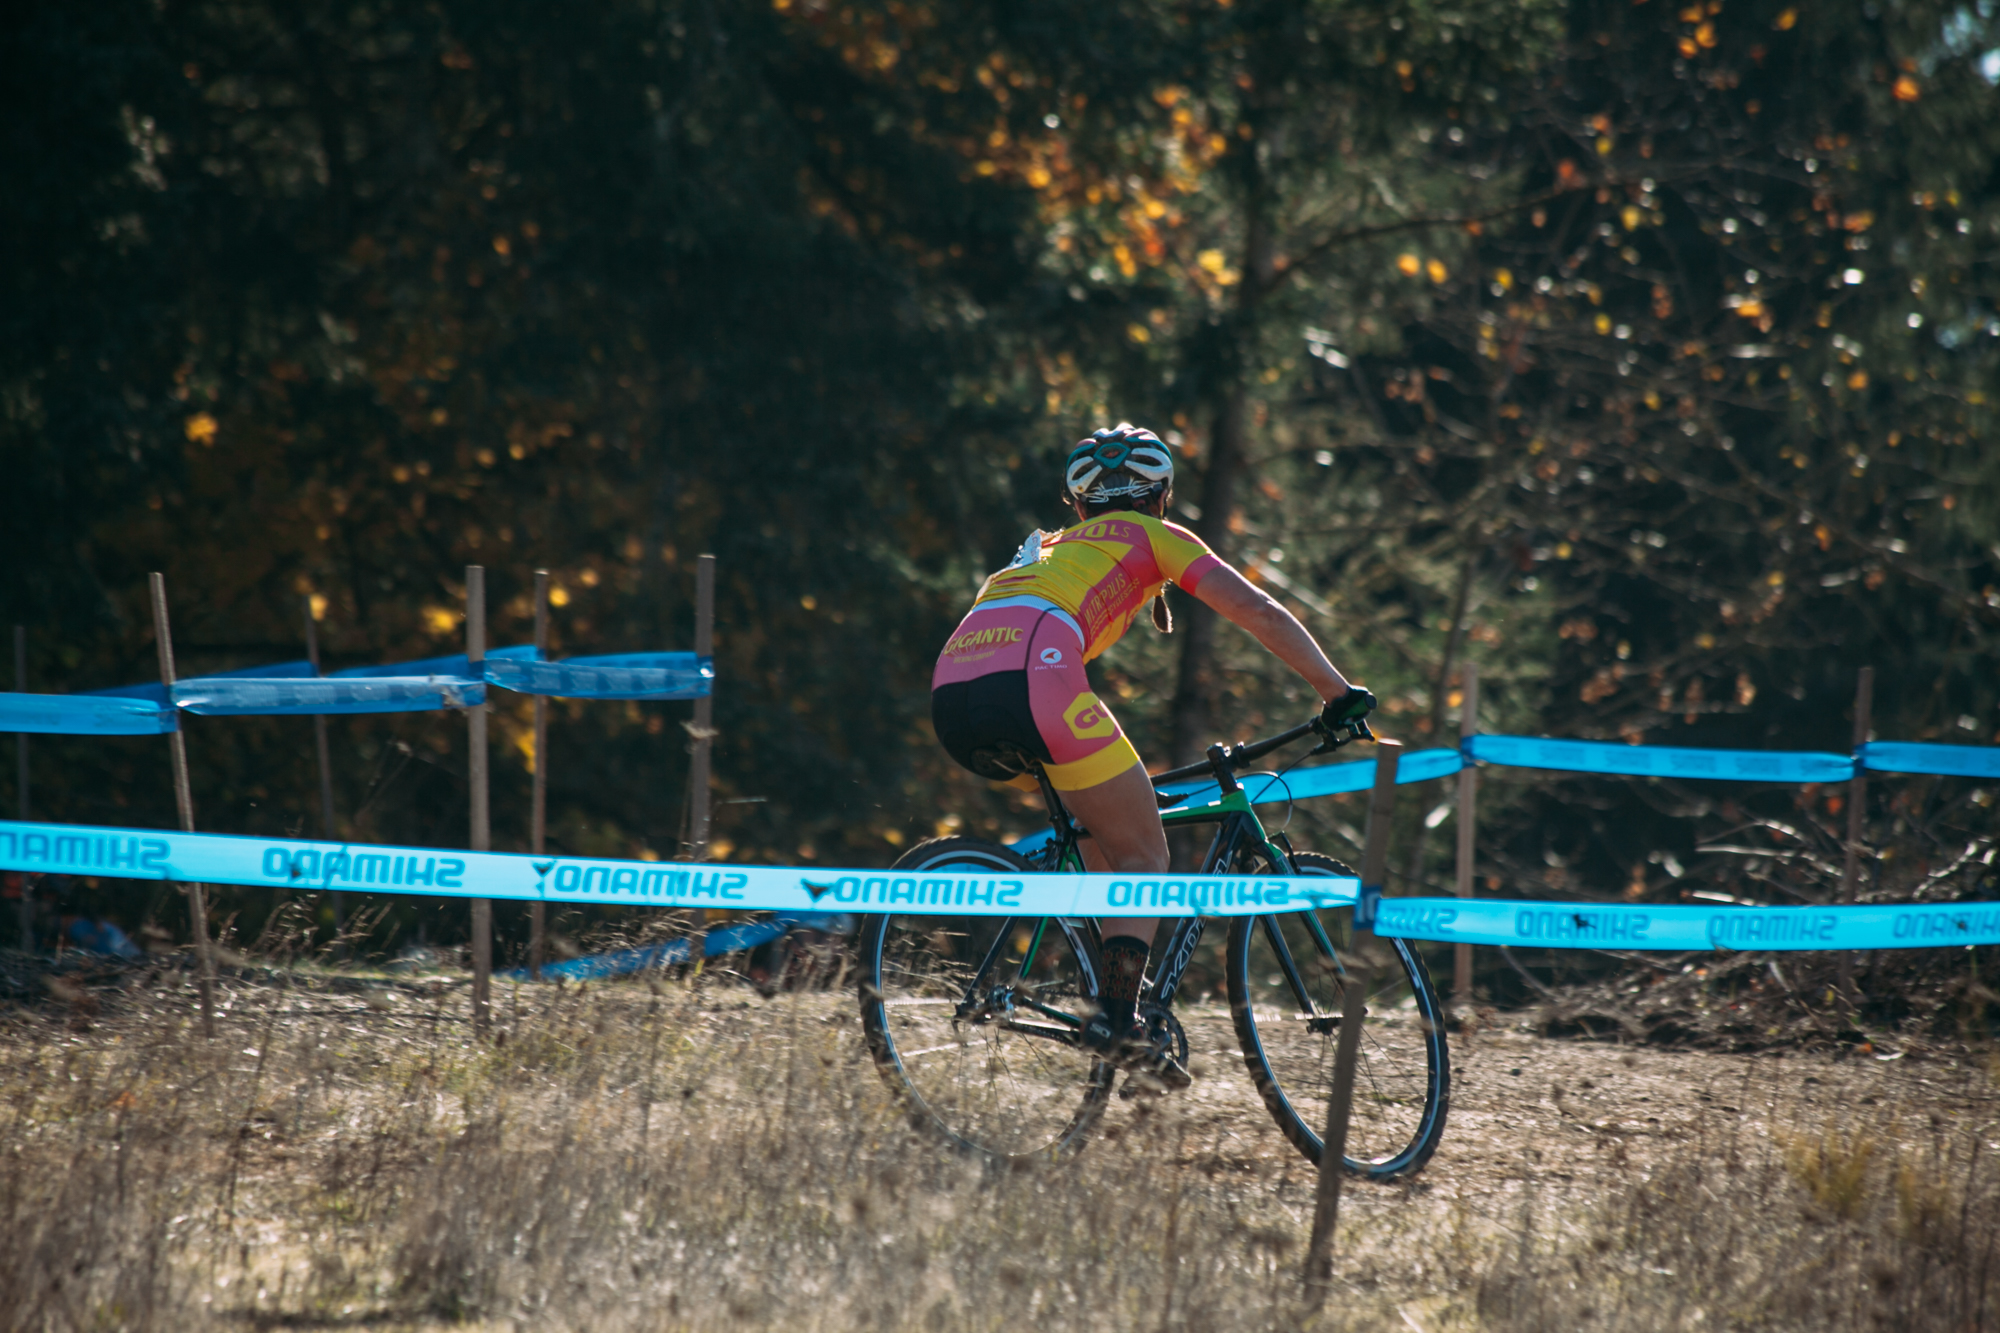 Cyclocross18_CCCX_BartonPark-mettlecycling128.jpg